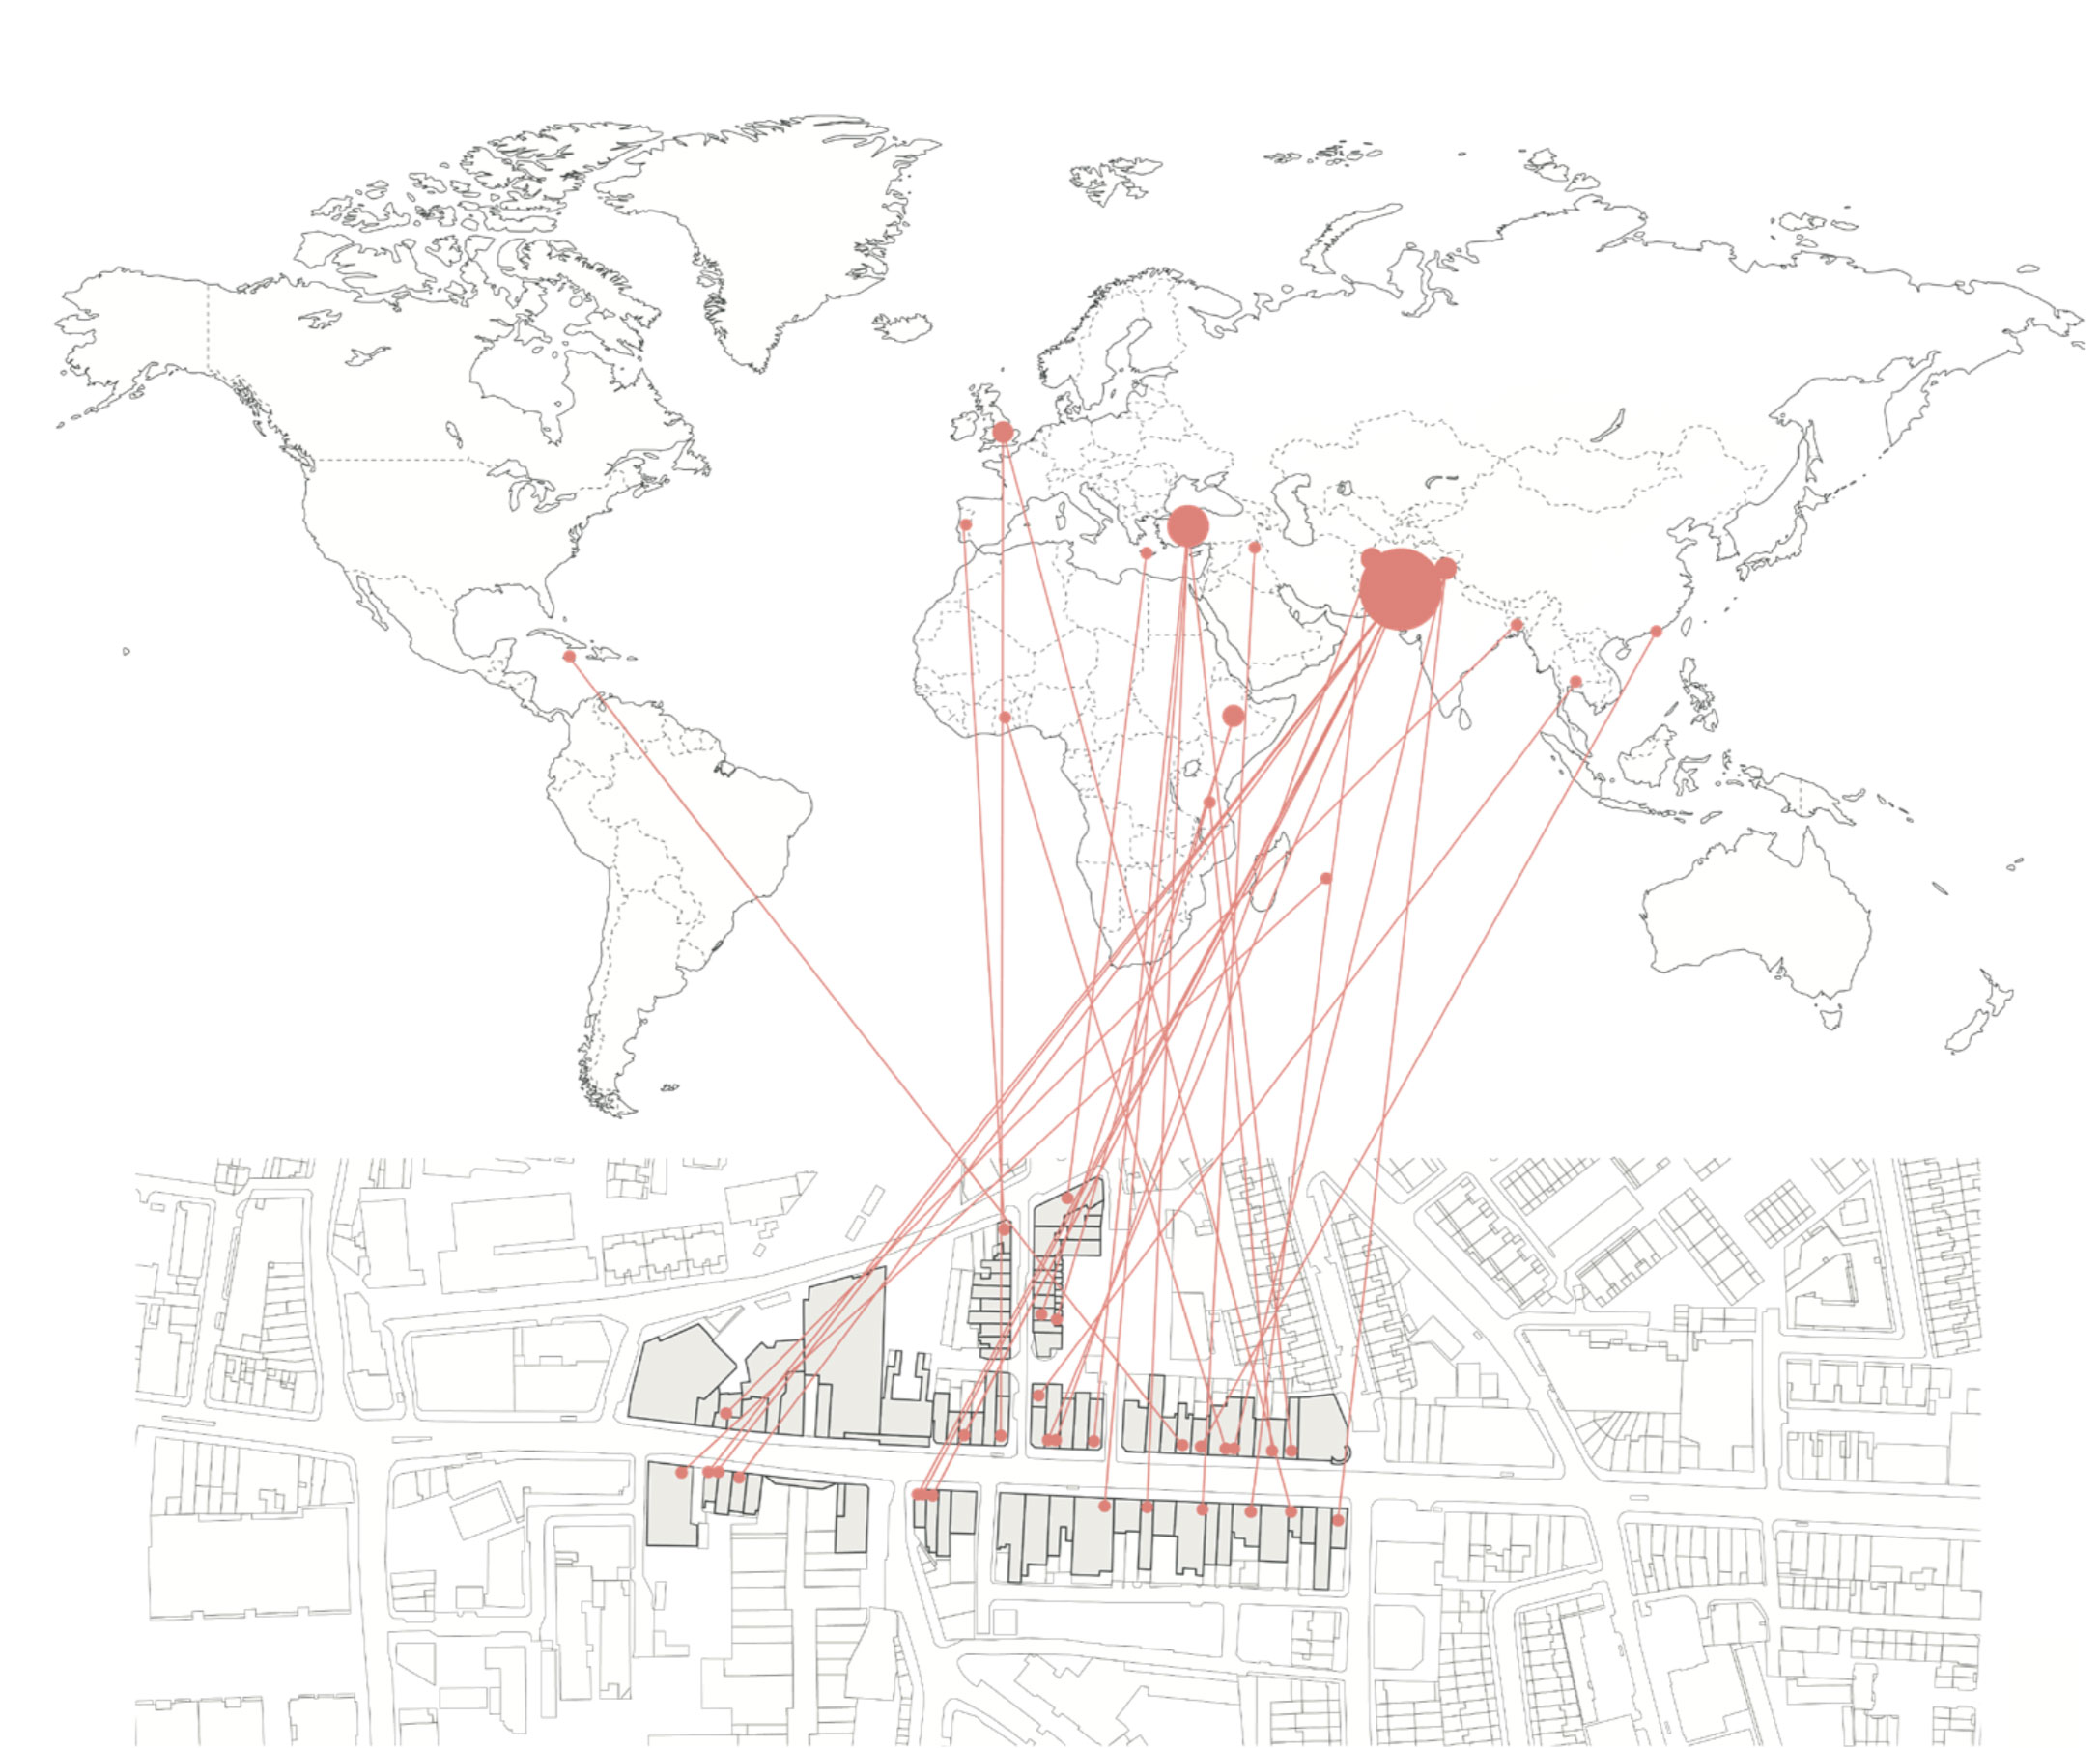 Diagram showing the range of countries represented by businesses within a three-minute walk.